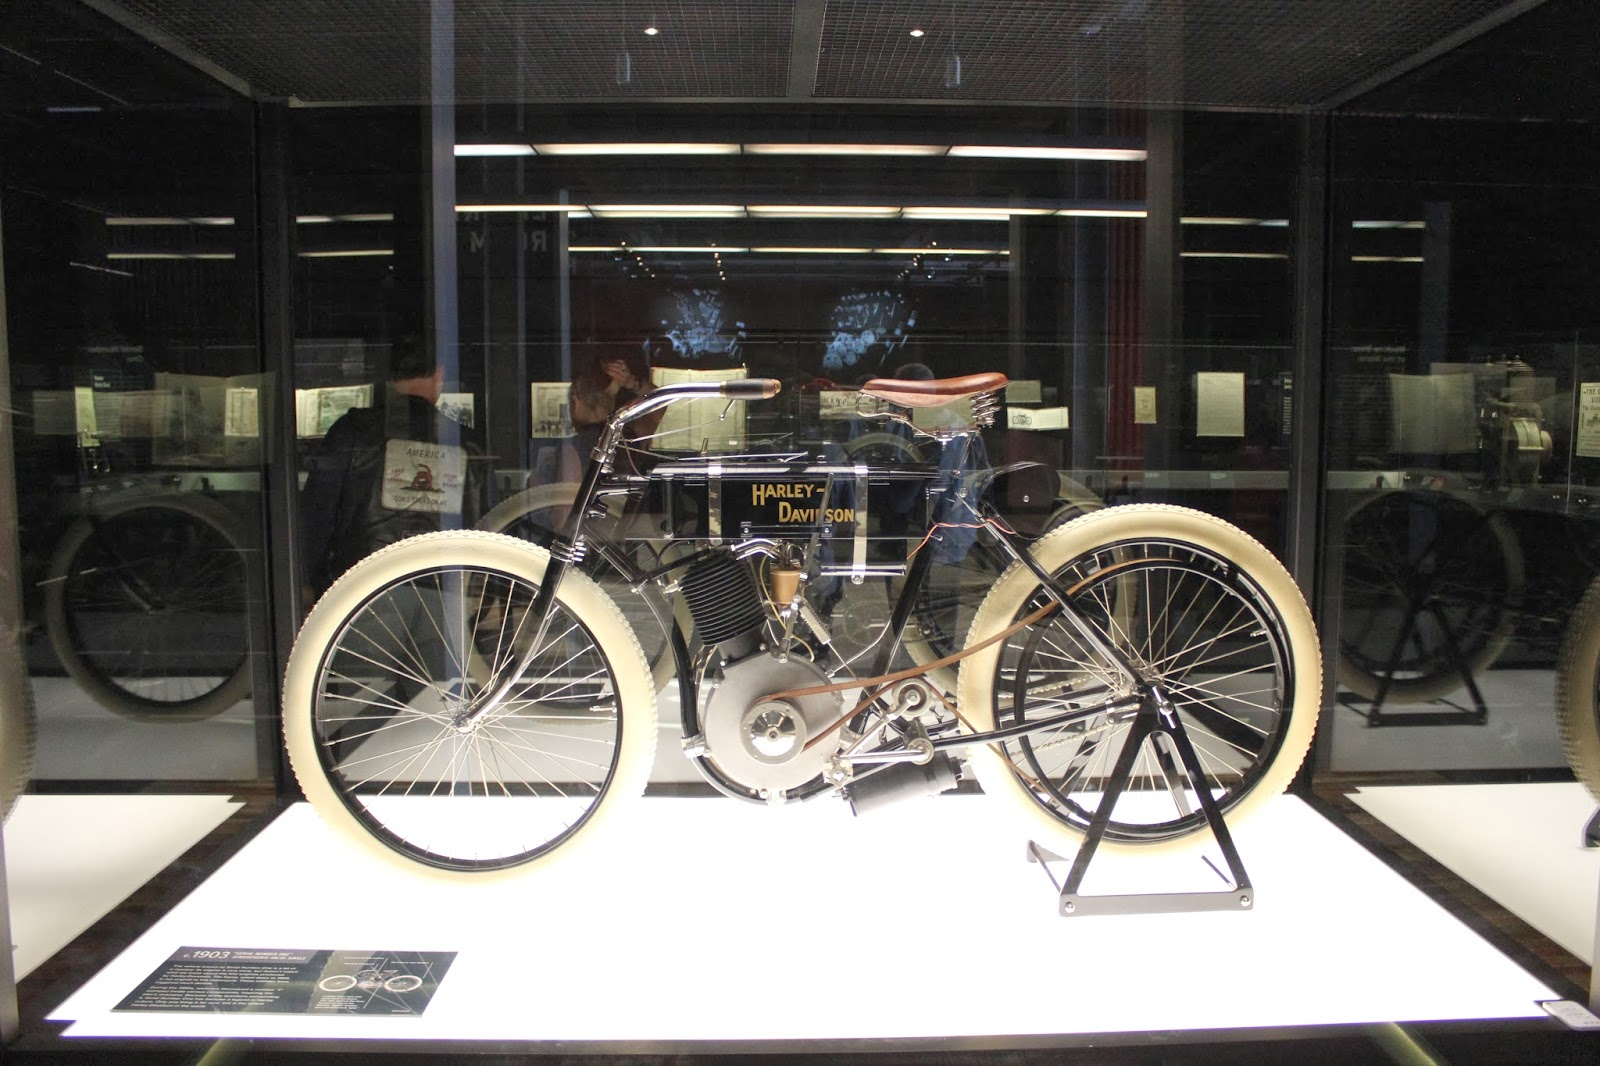 First Harley Davidson: Covering Classic Cars : The Harley-Davidson Museum In